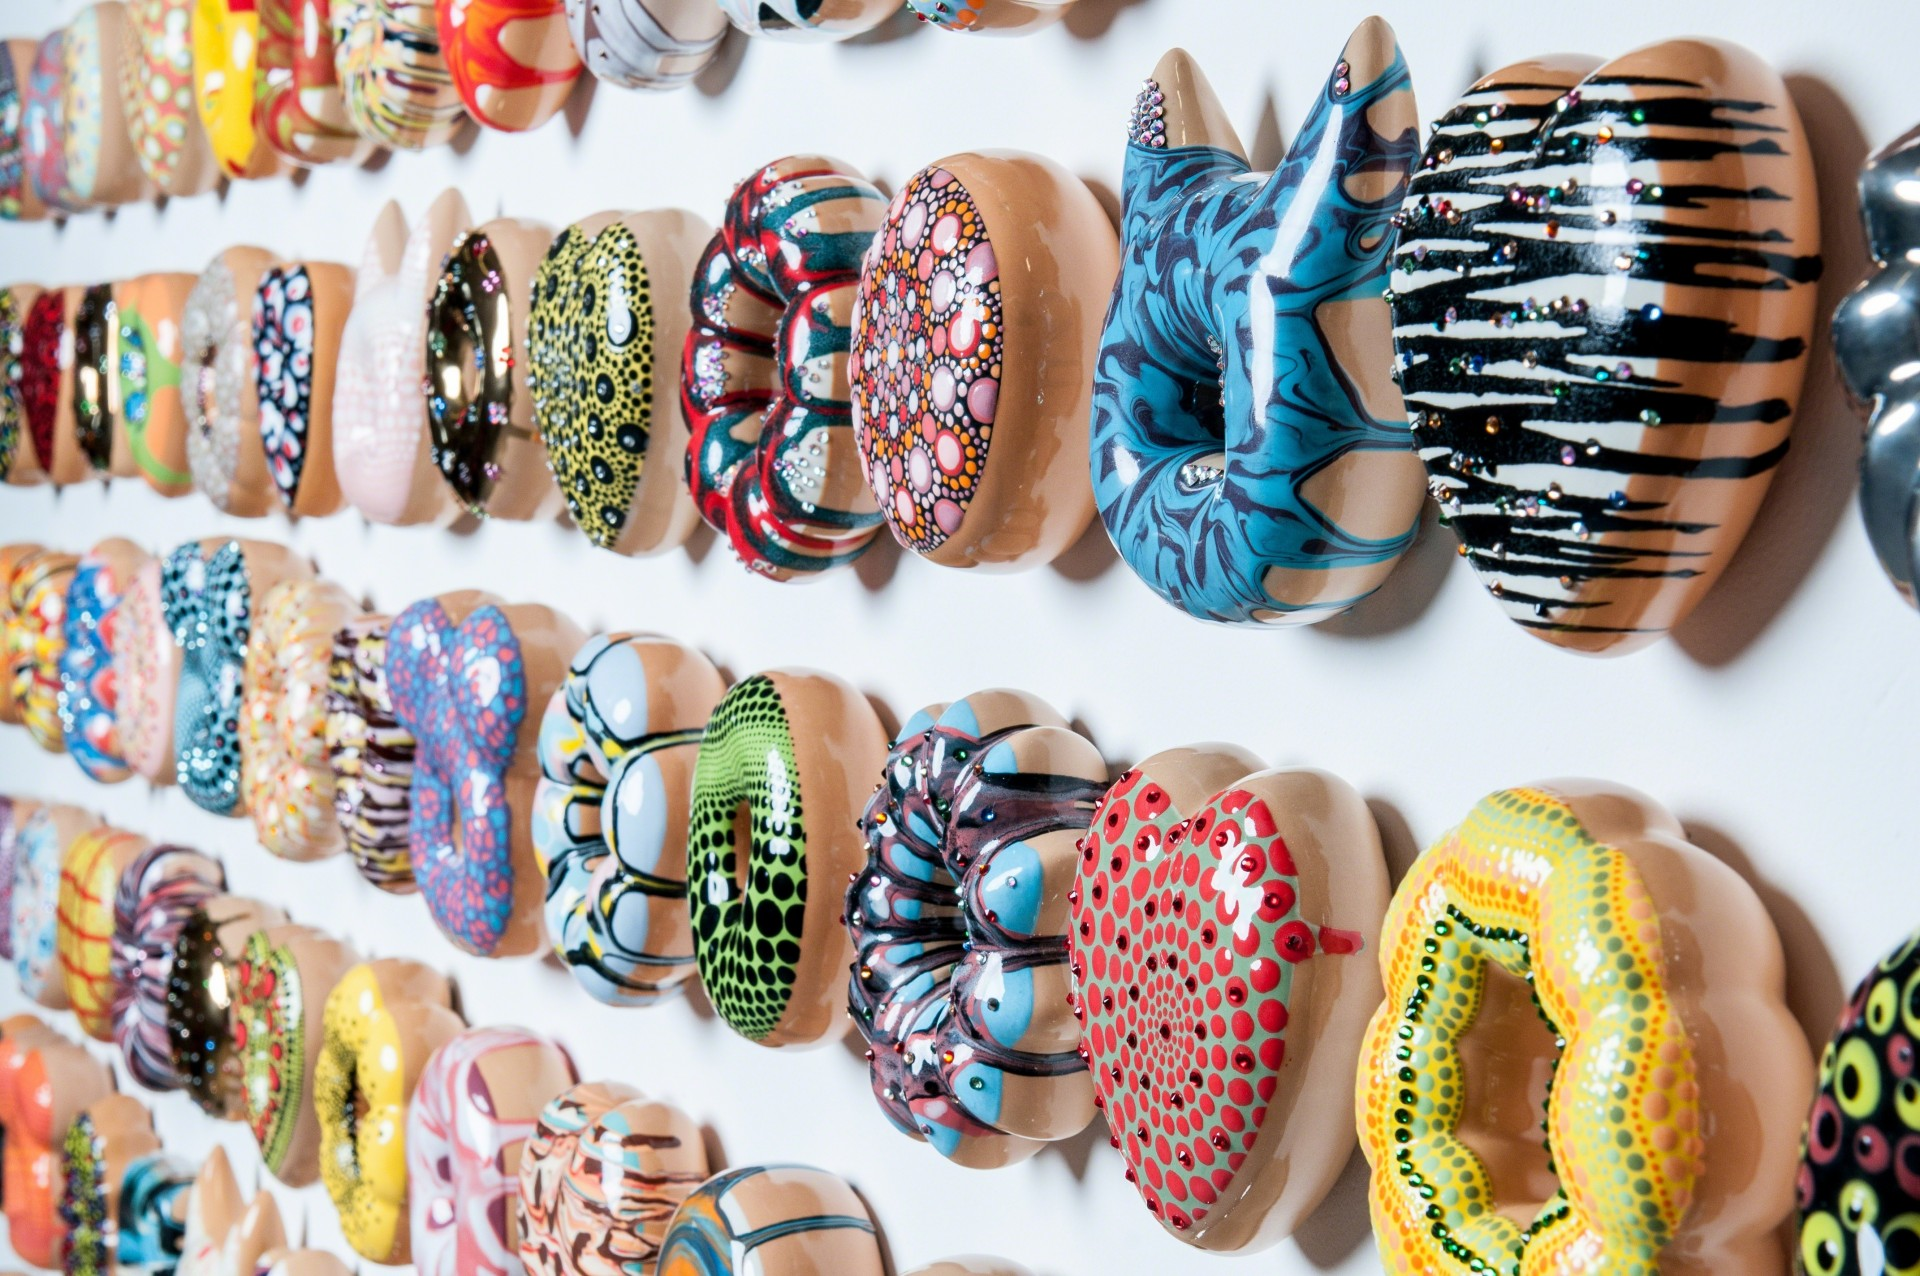 Pop Culture Inspired Ceramic Donuts